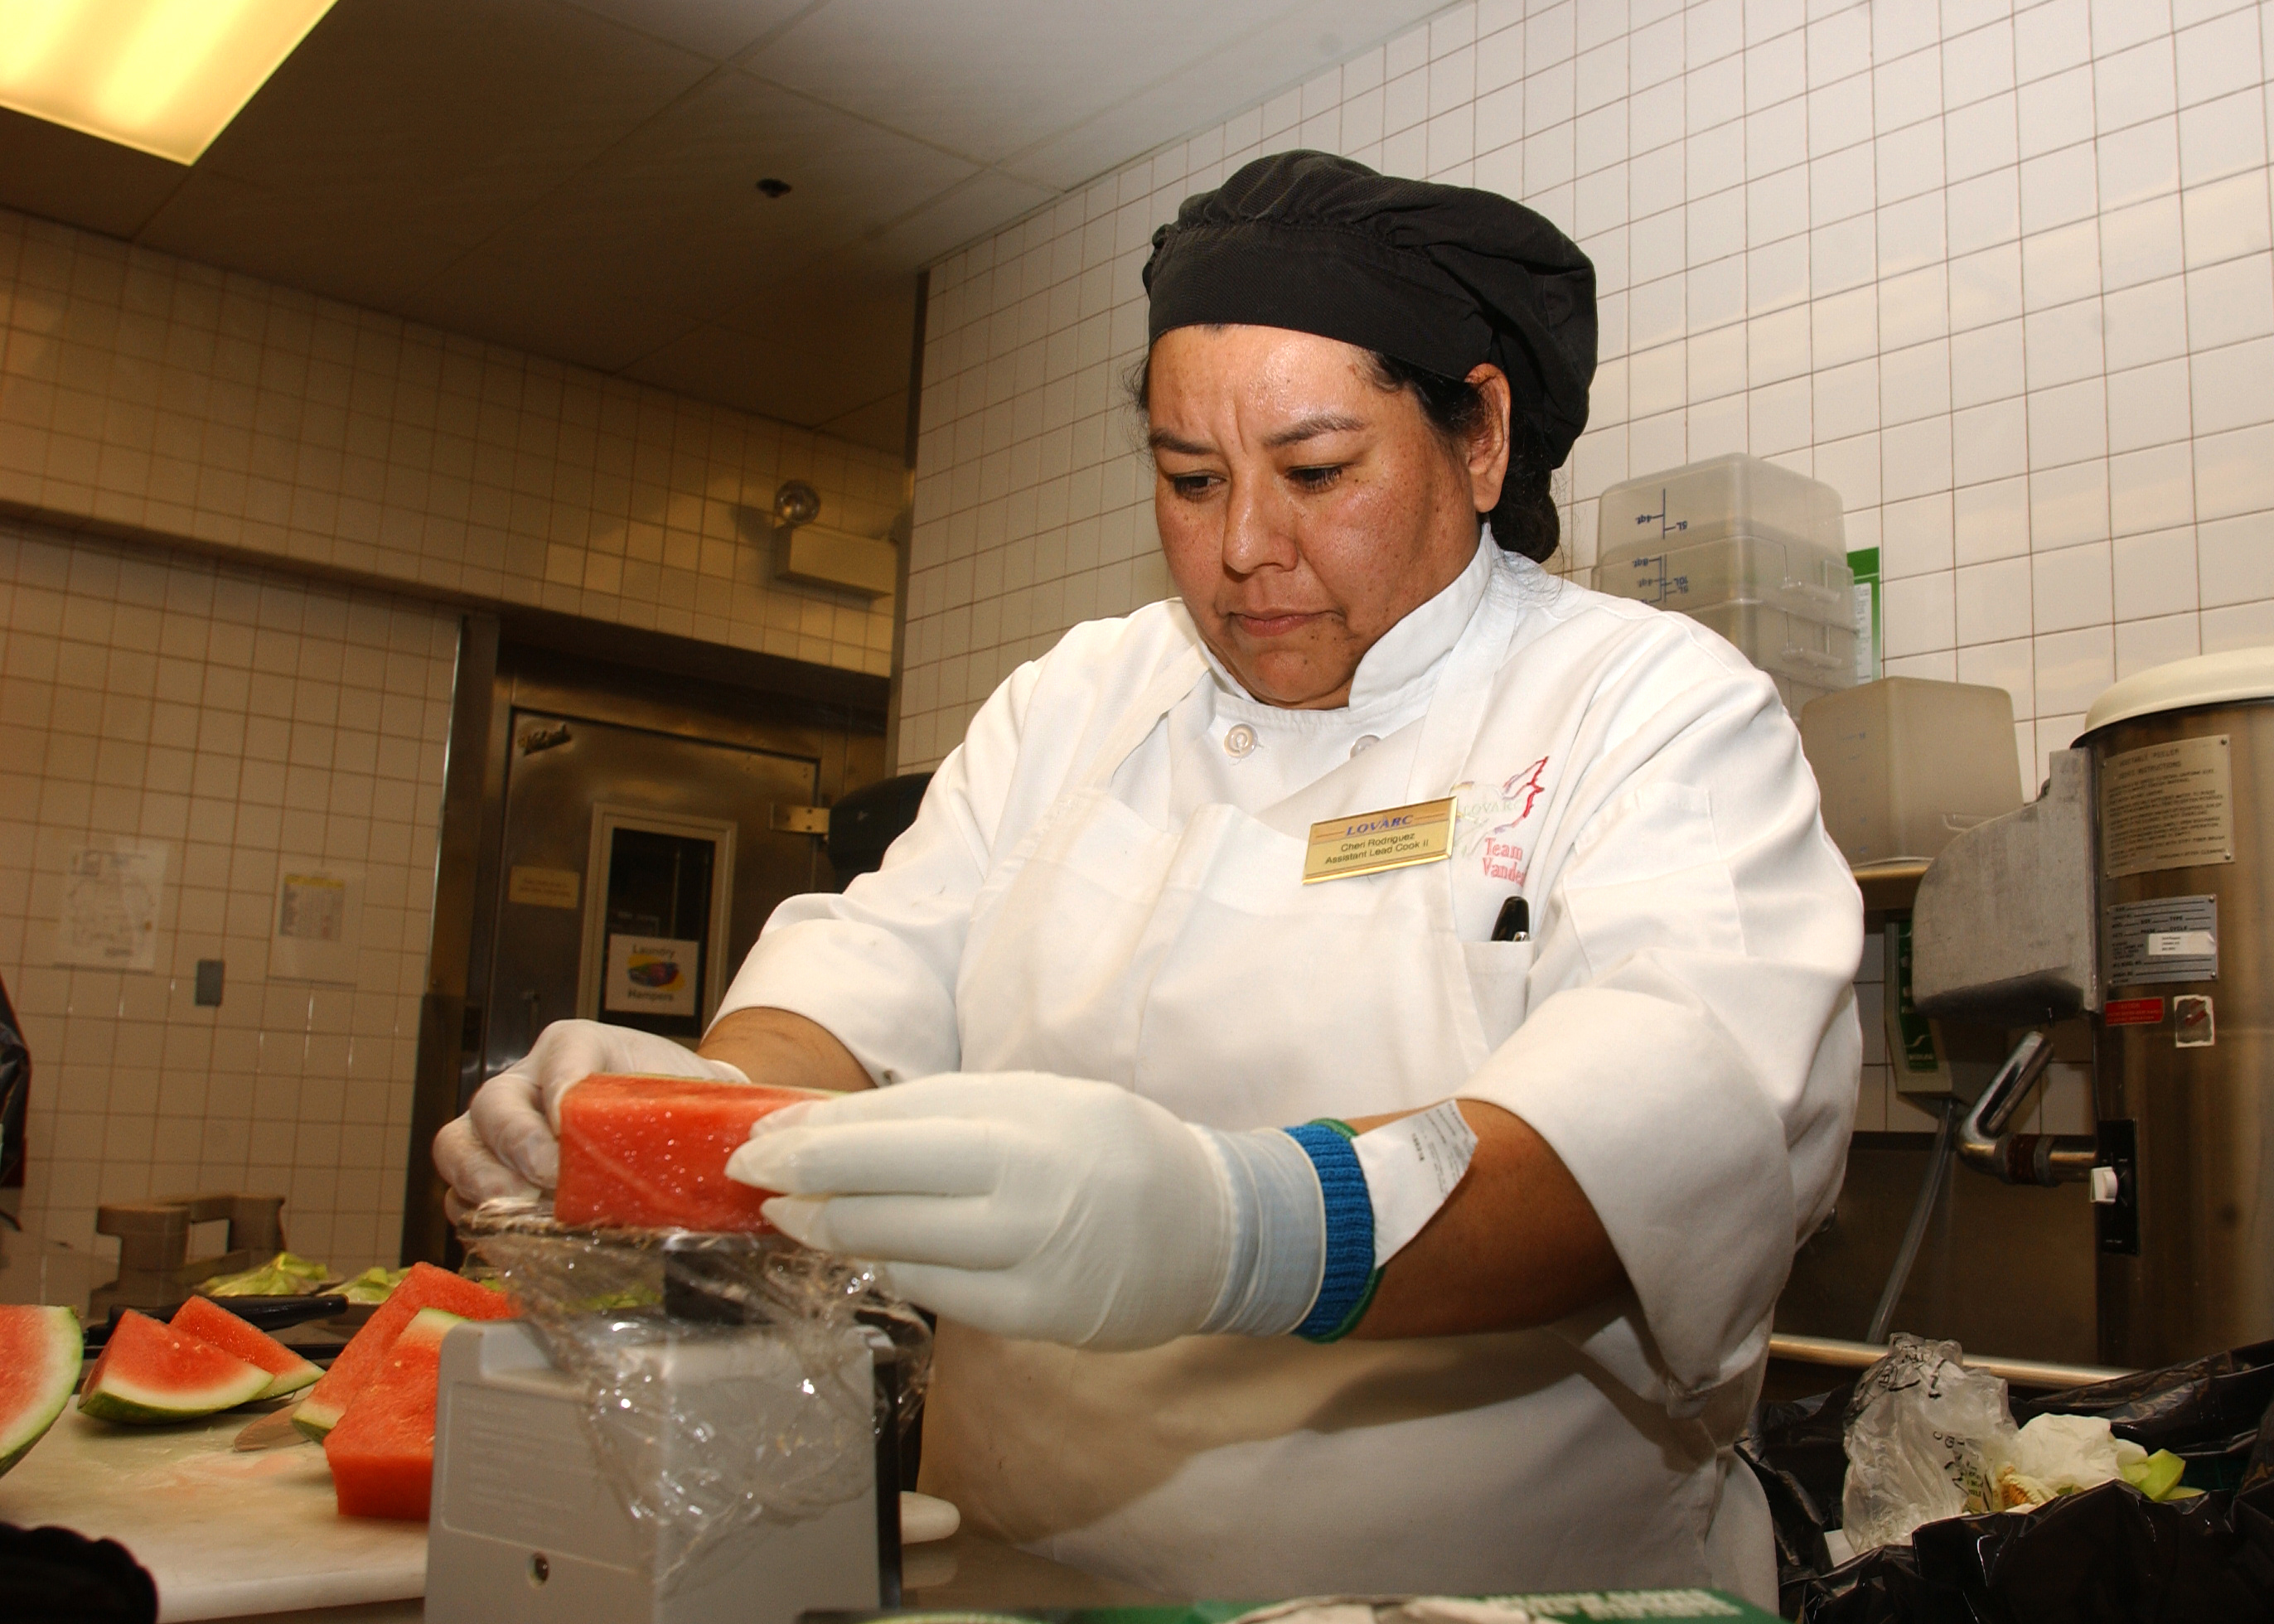 of 2 cheri rodriguez a 30th services division lead cook weighs watermelon at breakers dining facility on vandenberg afb